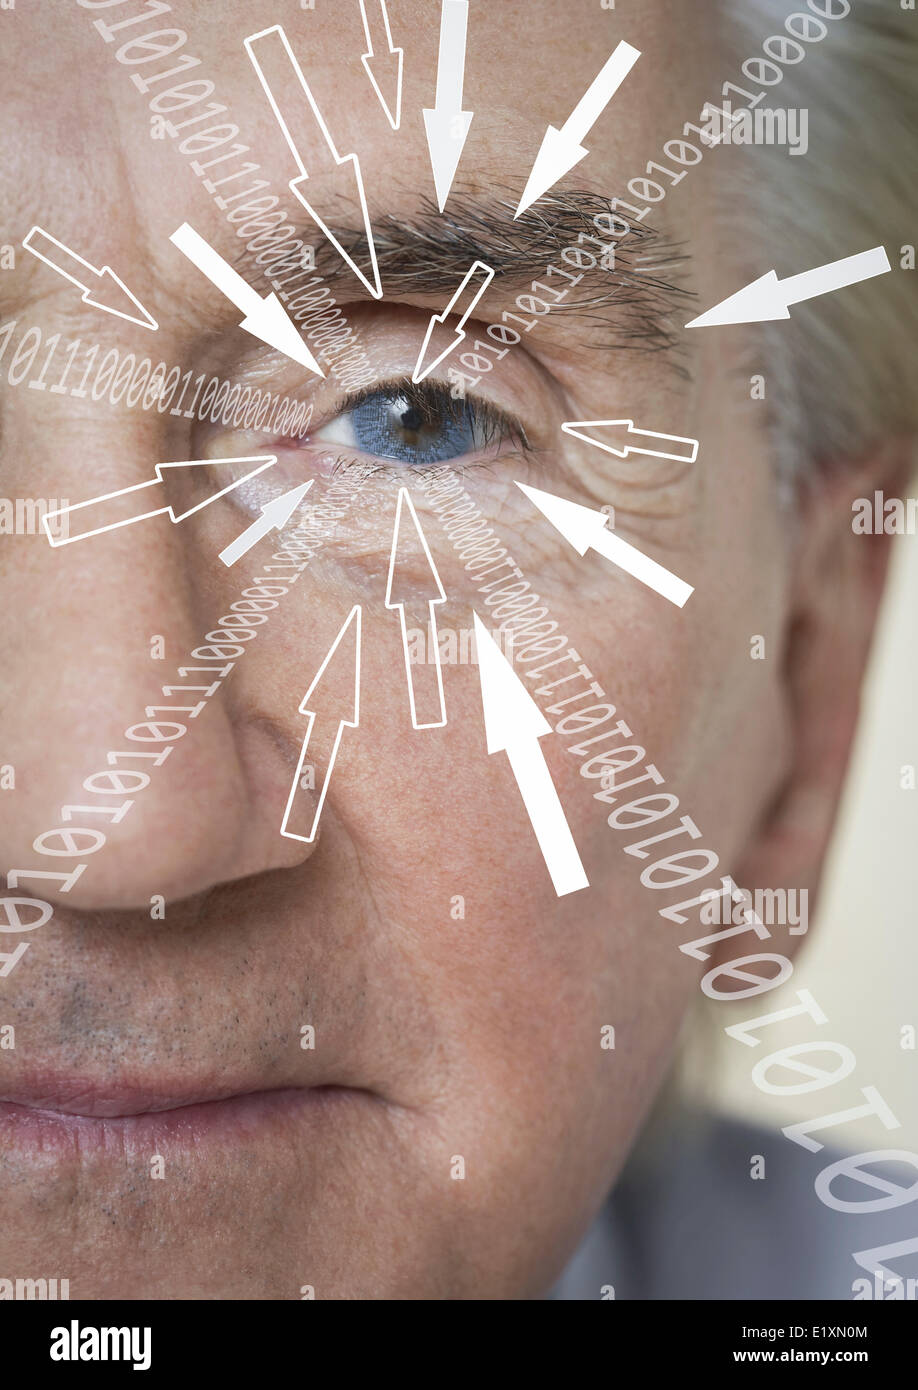 Close-up portrait of businessman with binary digits and arrow signs moving towards his eye - Stock Image